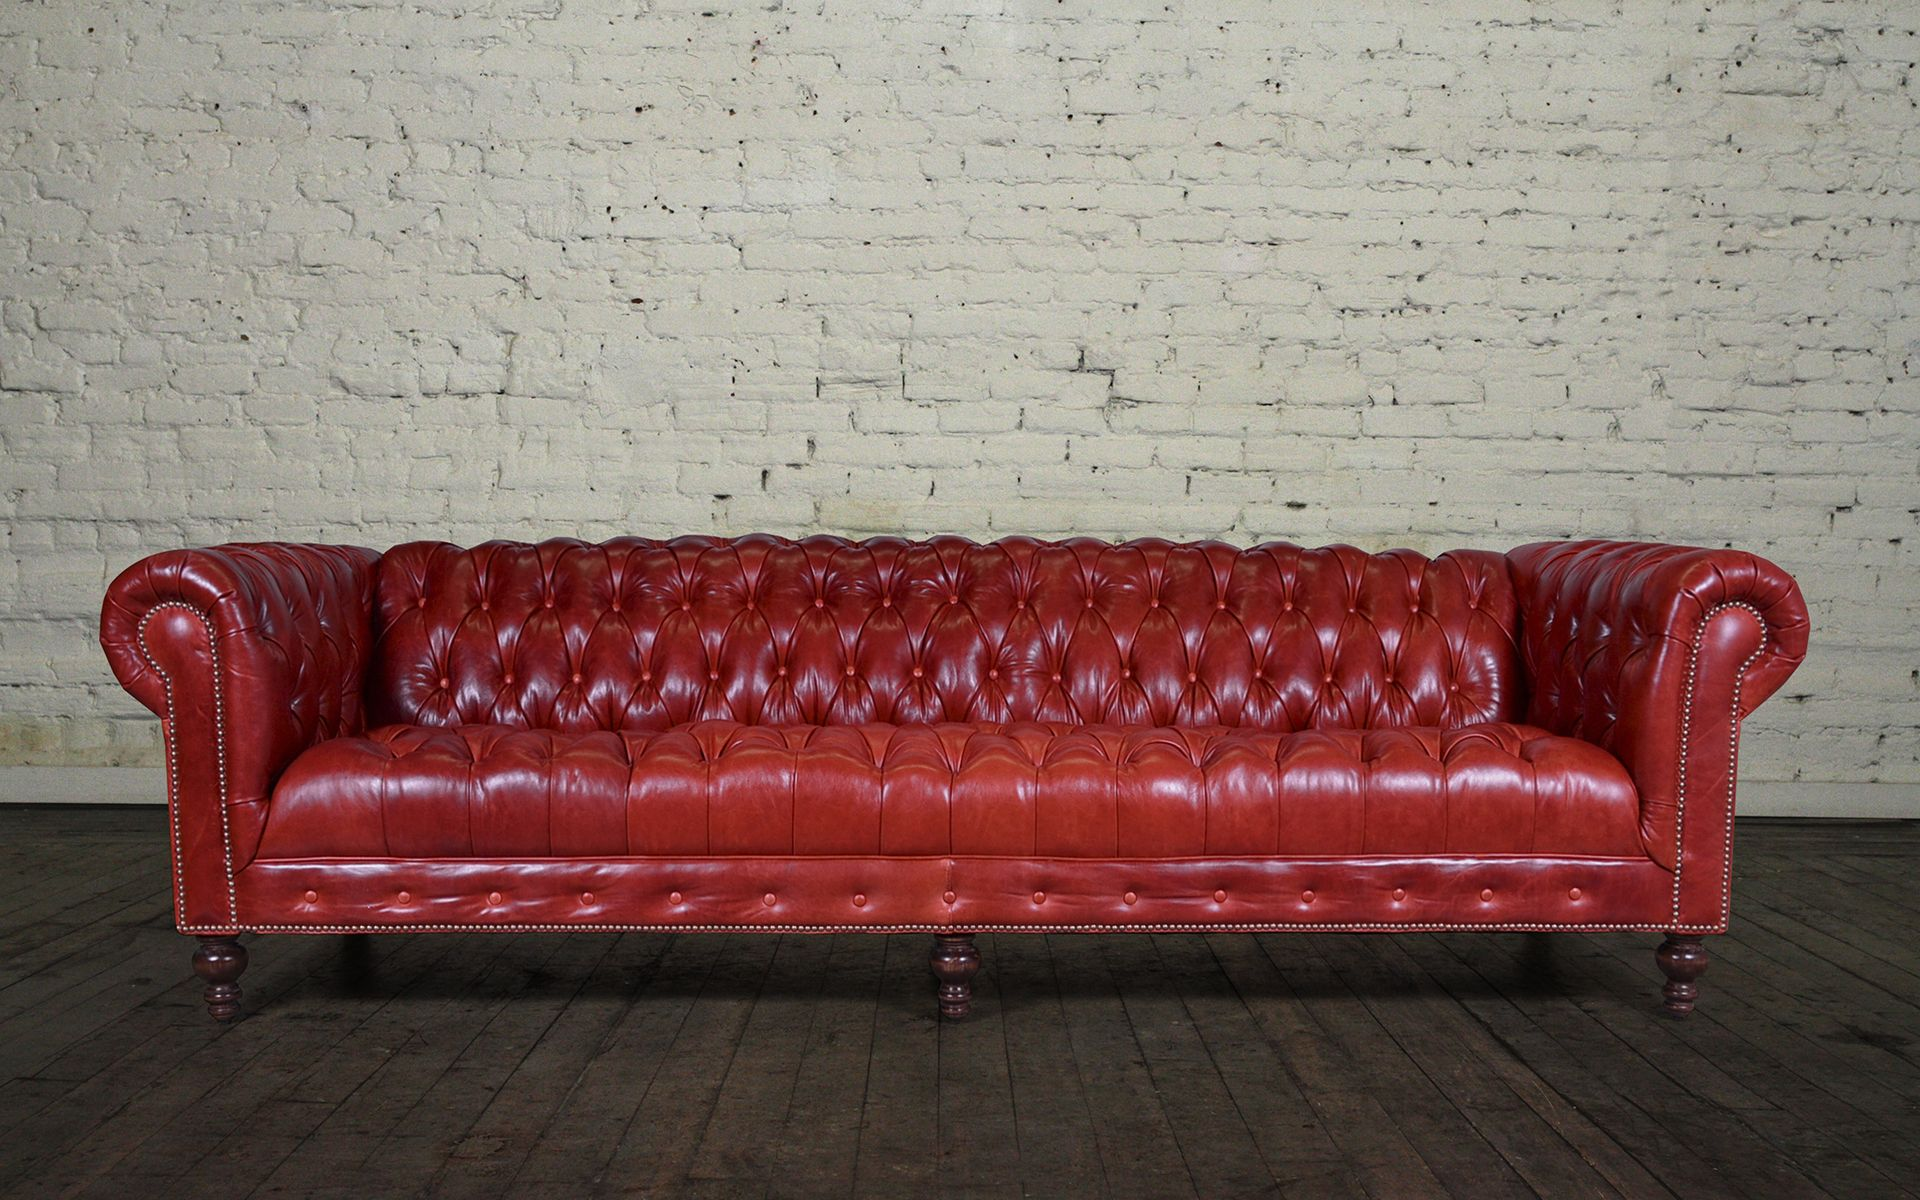 CHELSEA CHESTERFIELD SOFA COCOCO Home Chelsea Chesterfield